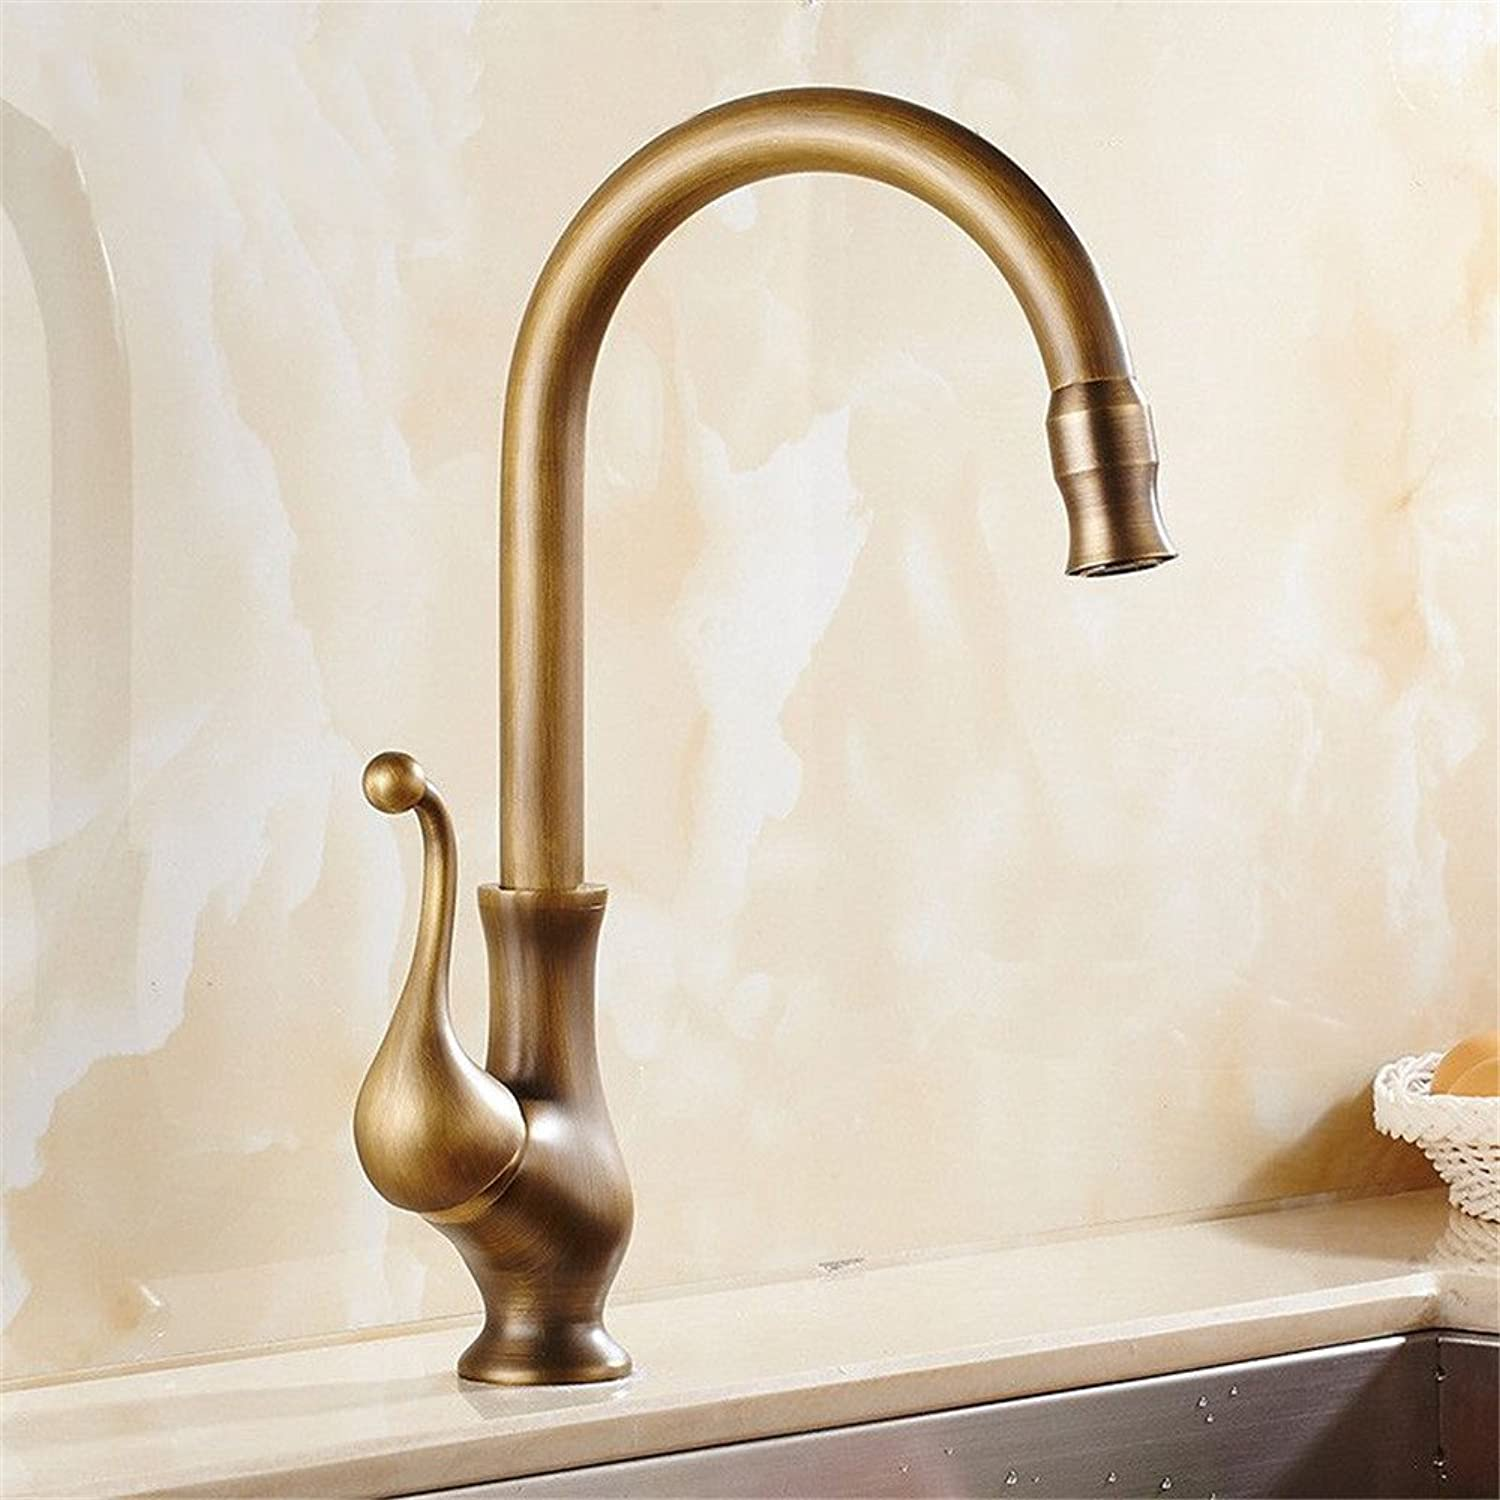 Bijjaladeva Antique Bathroom Sink Vessel Faucet Basin Mixer Tap Antique-brass kitchen faucet hot and cold water mixing valve tank fittings can be redated 360° Single Hole Single Ha